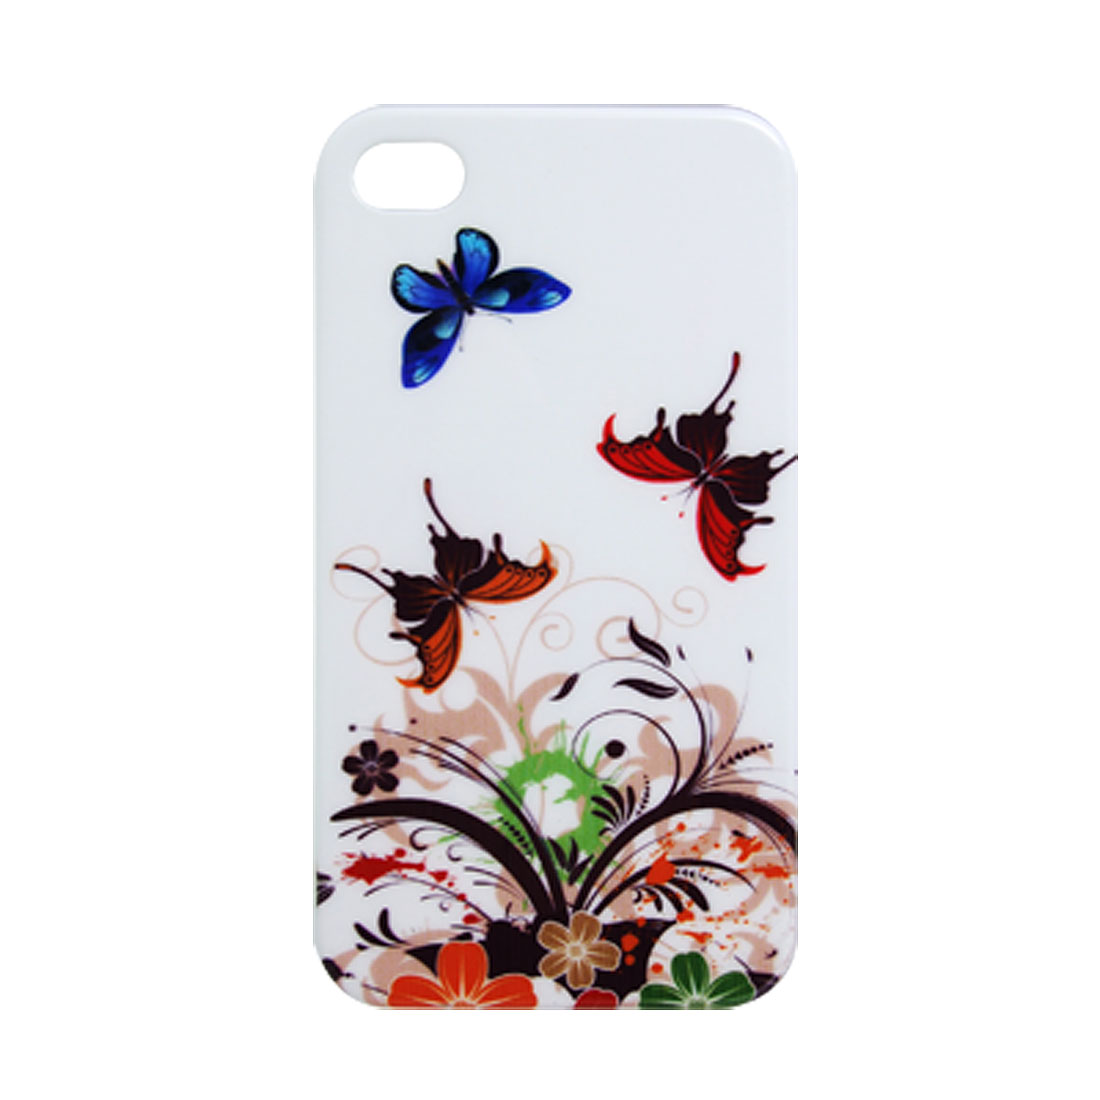 Butterfly Print Hard Plastic Back Case for iPhone 4 4G